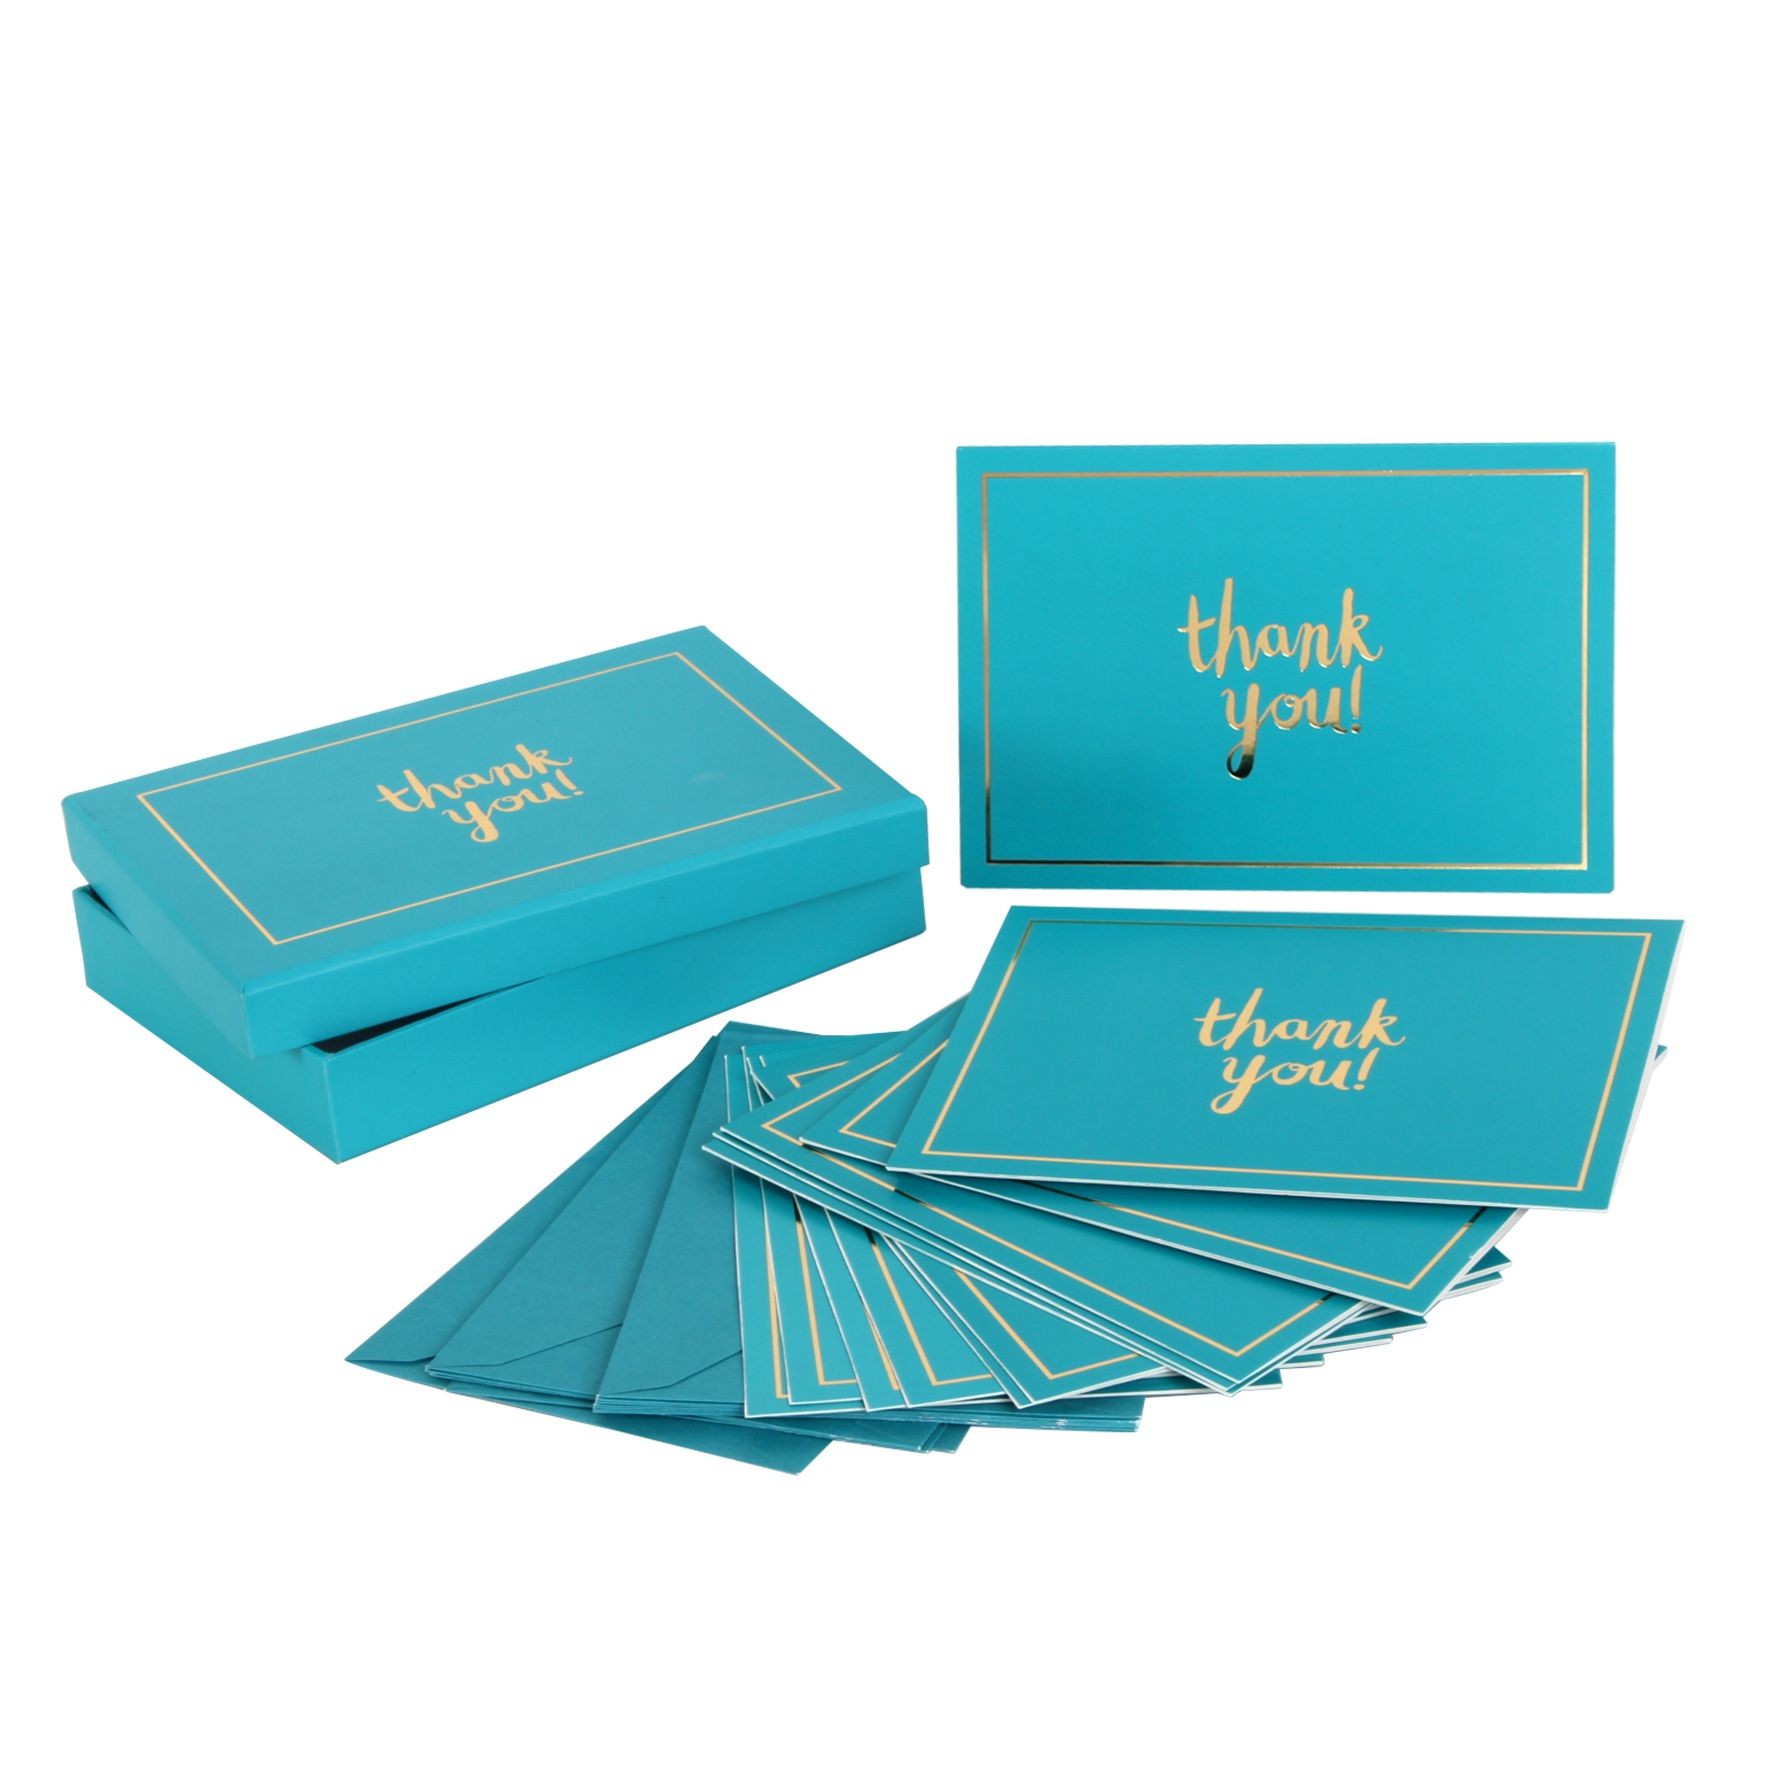 thank you cards and envelope set of 12 designer bright turquoise